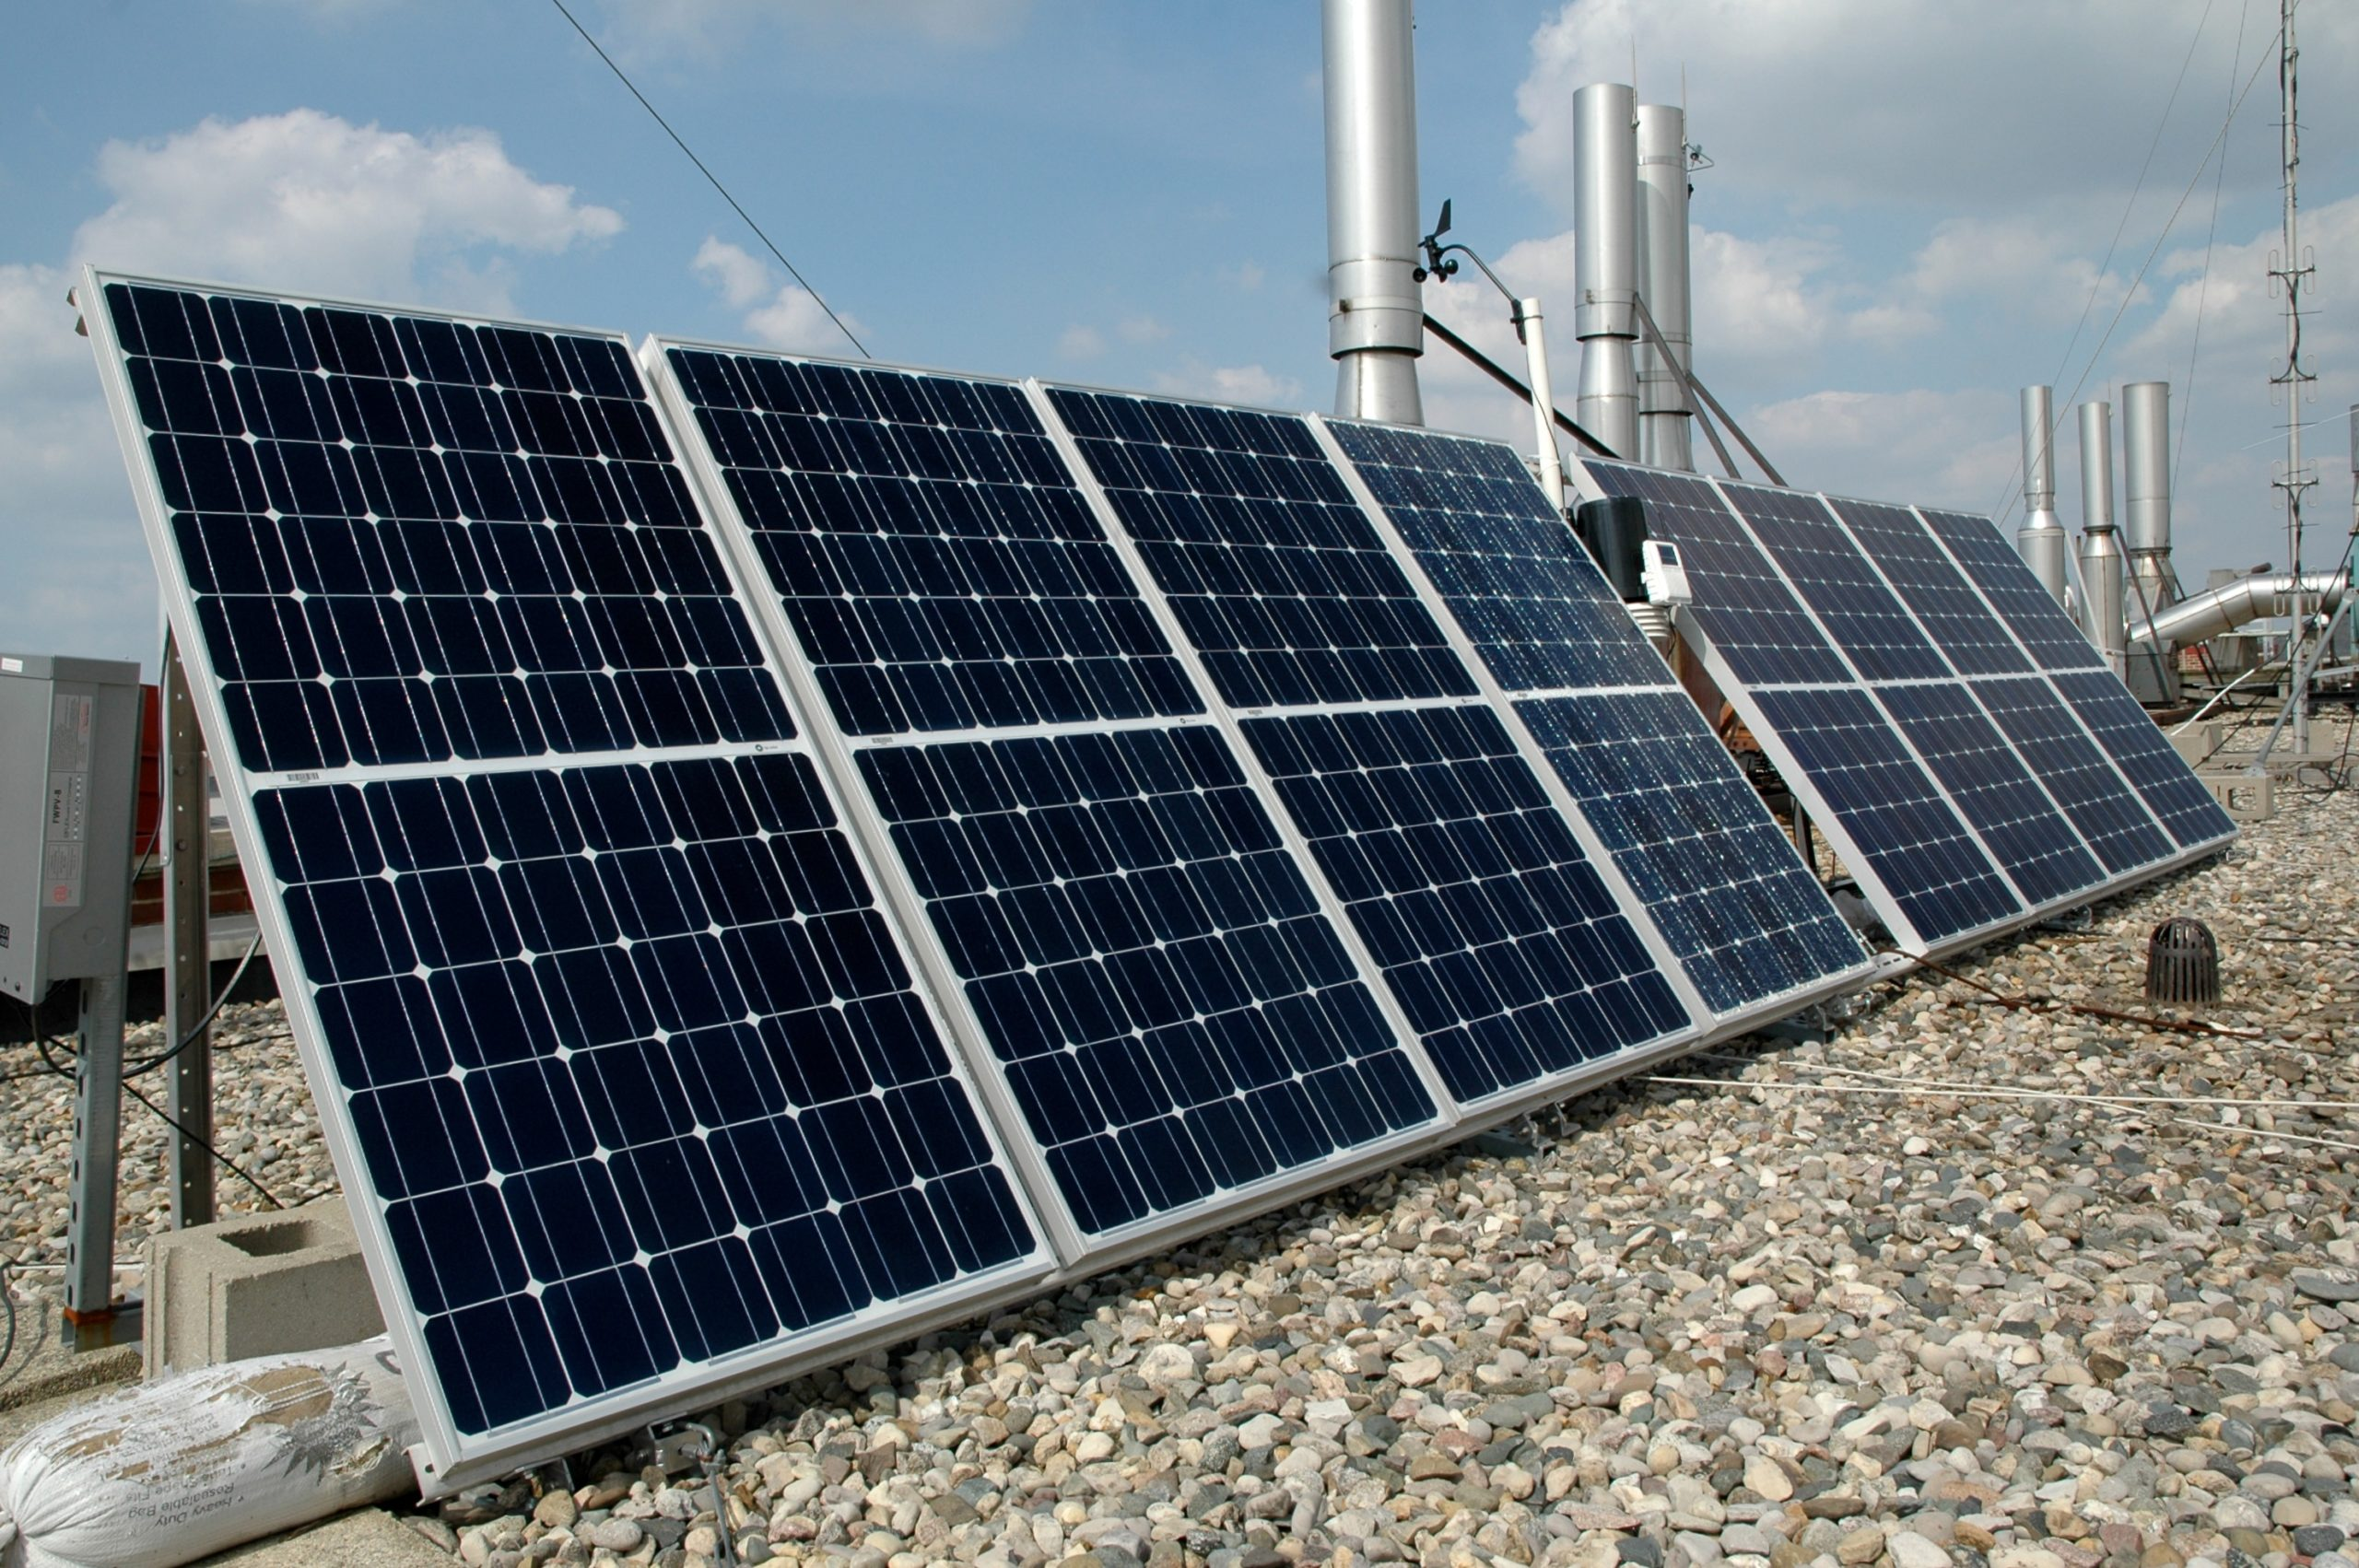 Wolverine will purchase 100% of the energy generated by the 1.2MW solar array. Image: stantoncady/Flickr